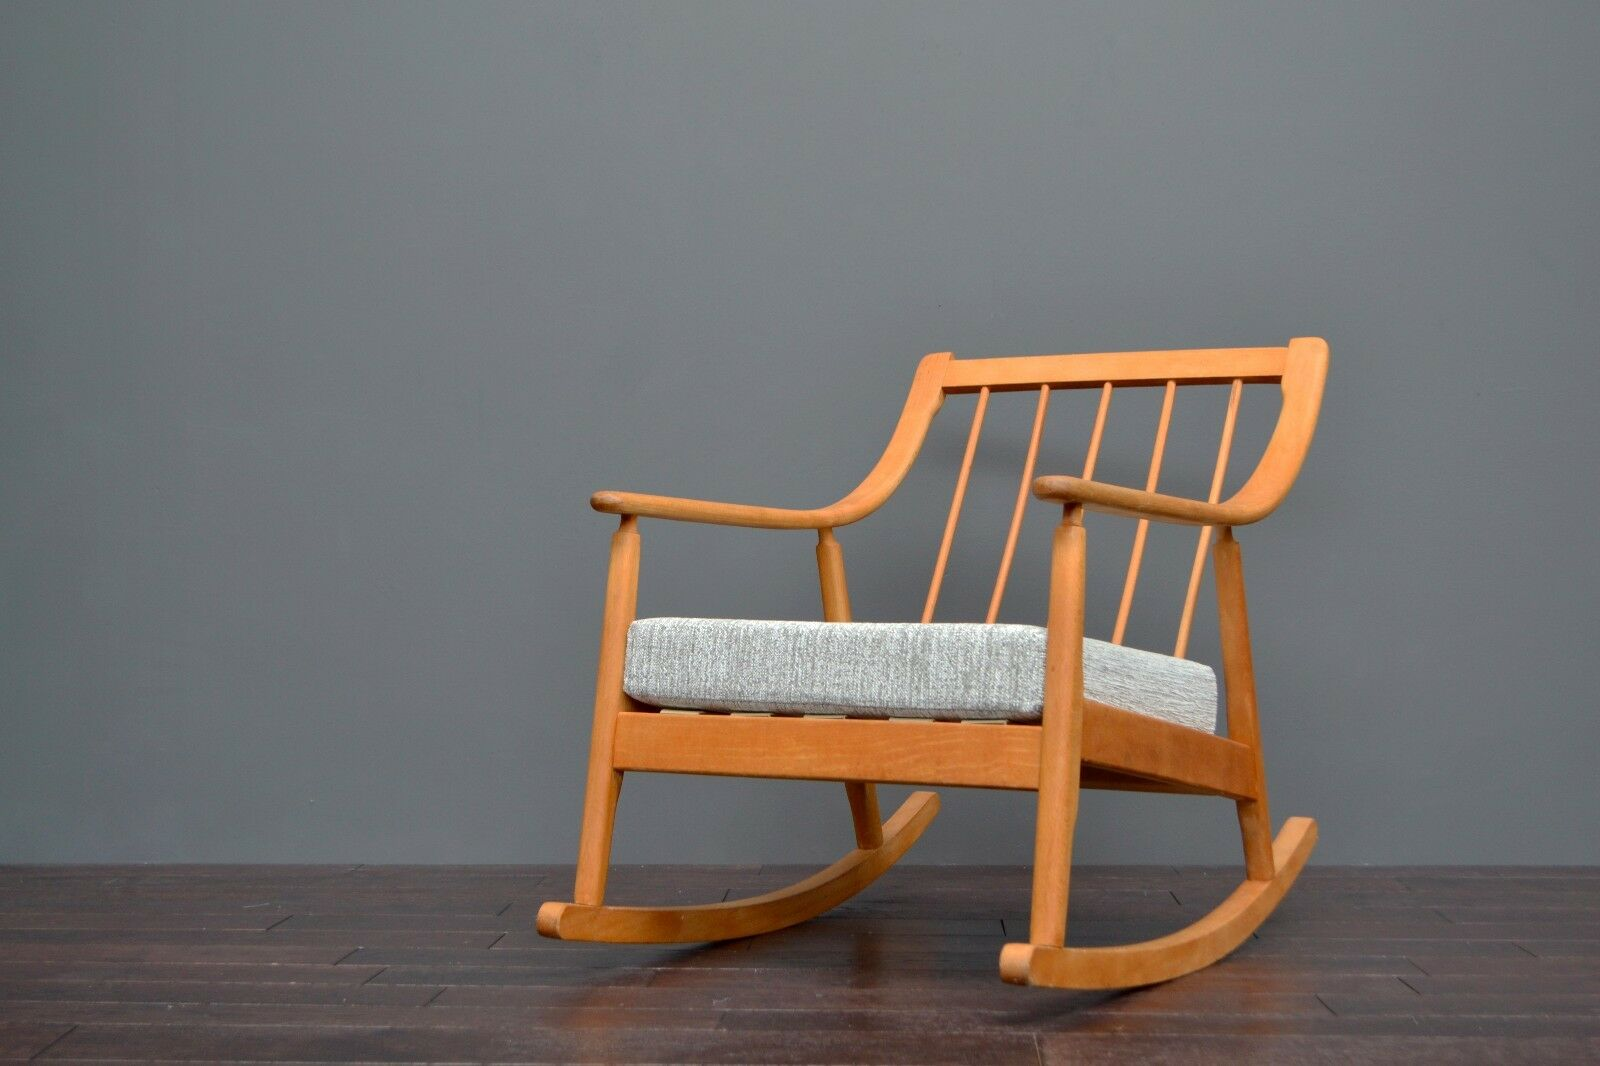 mid century modern rocking chair canada orange lounge vintage retro danish scandart